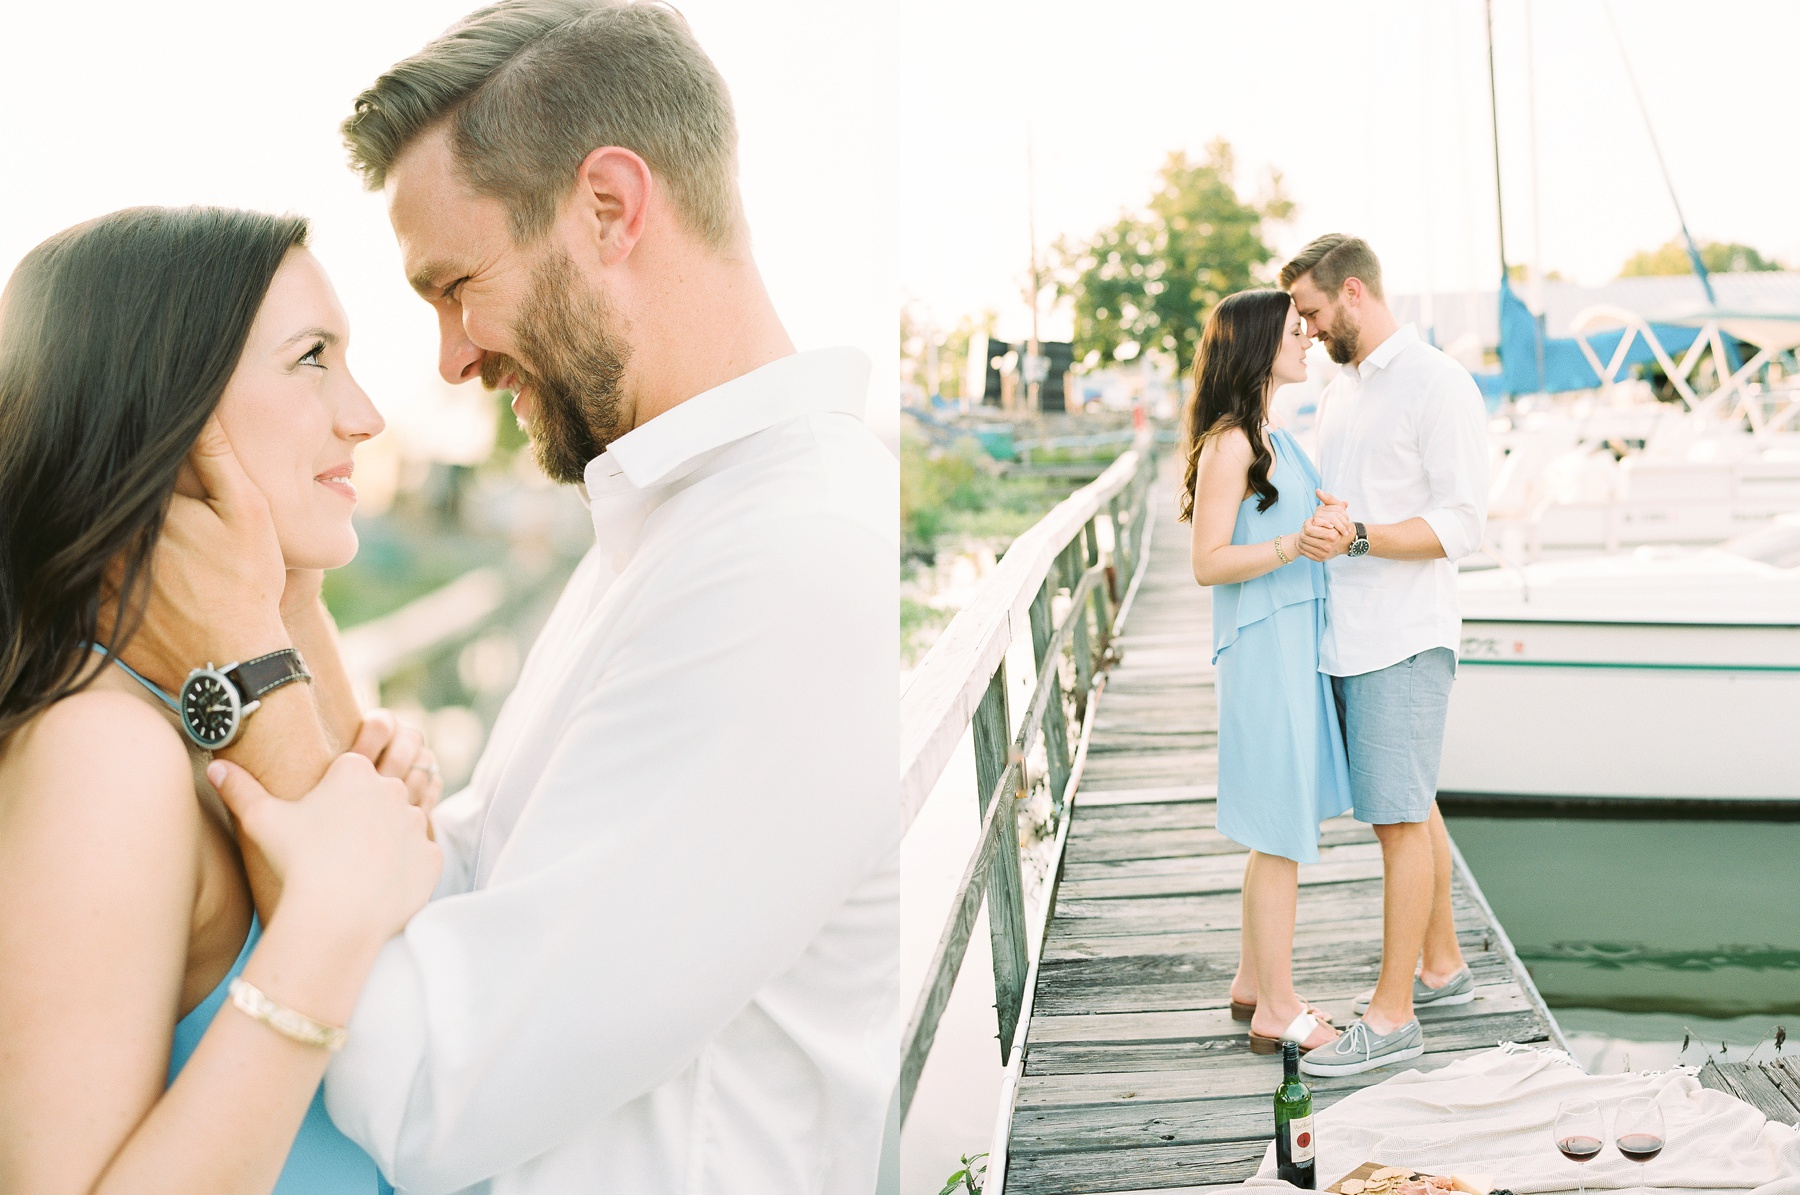 Nautical Boat Engagement Session Film Photographer_0564.jpg